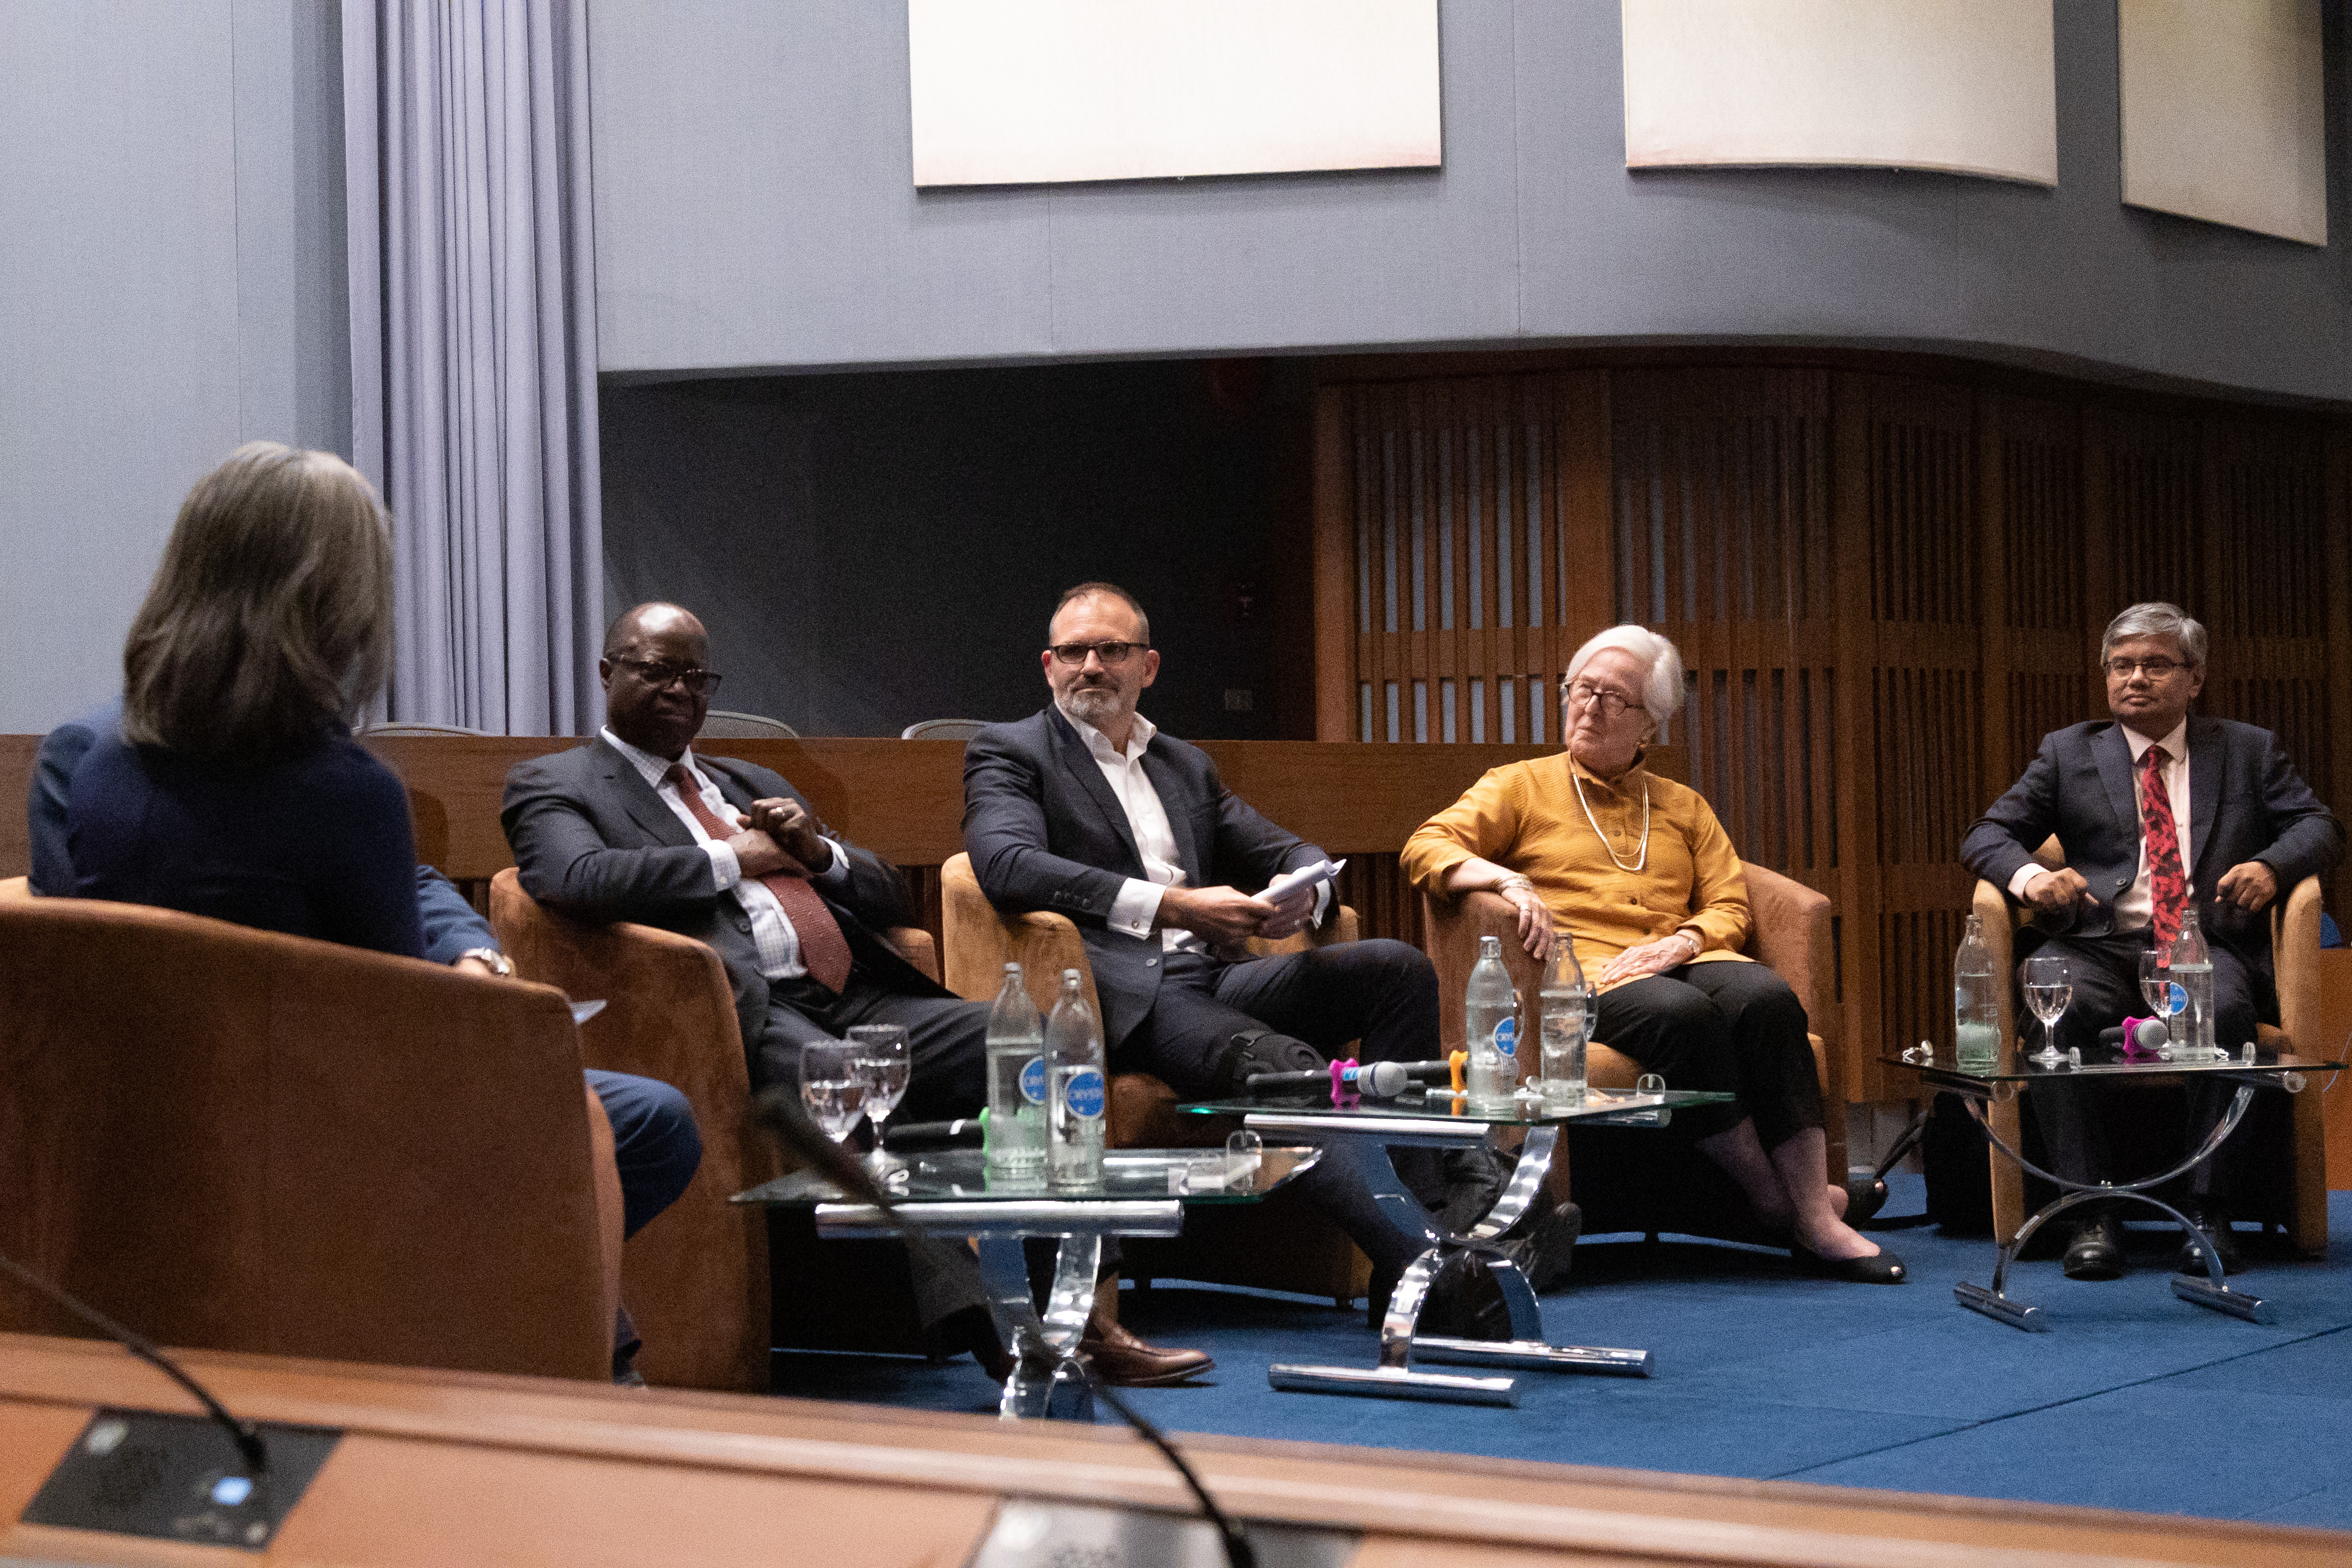 Policy panel